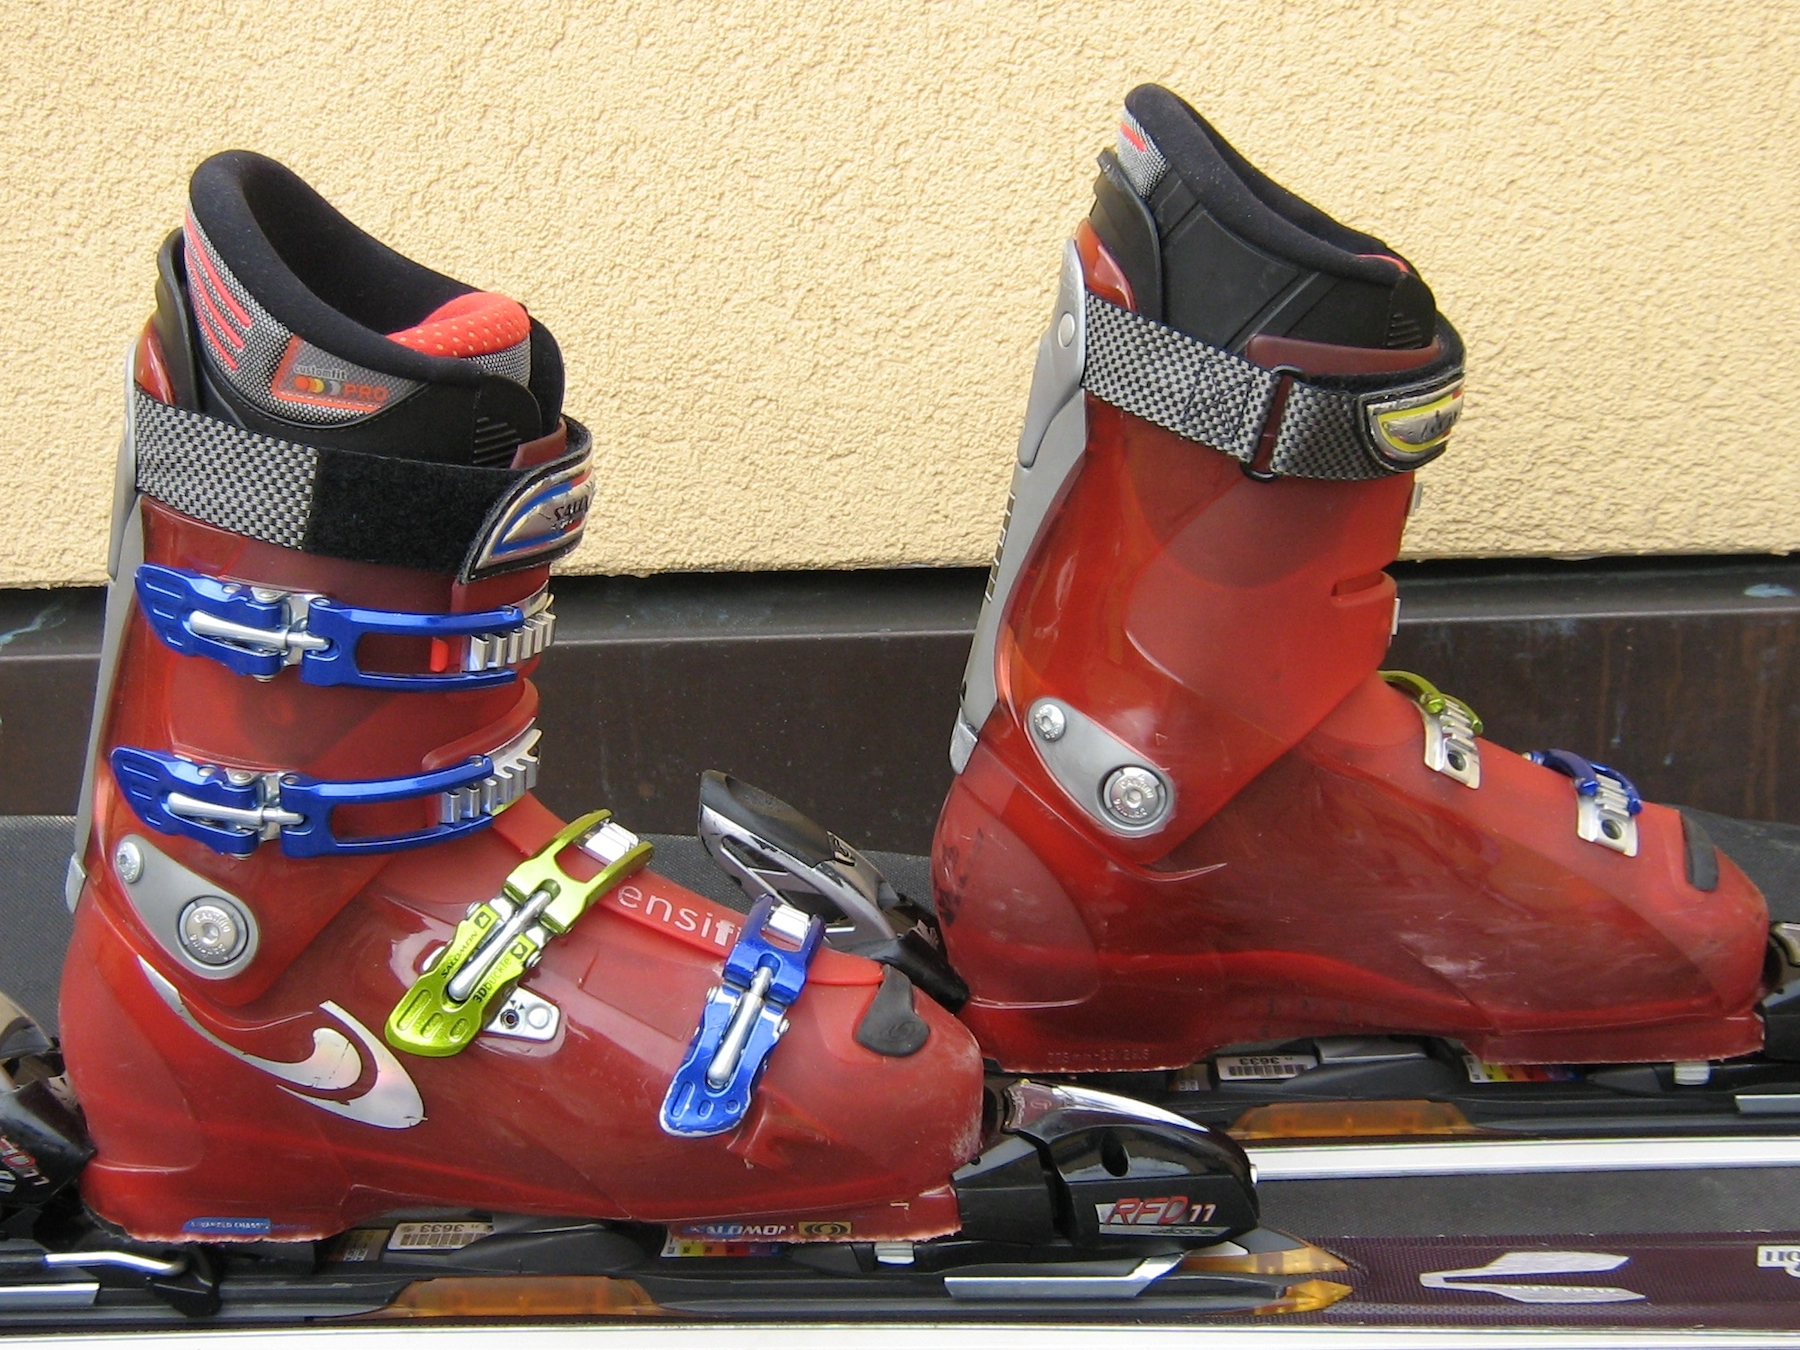 Chaussures de ski Salomon - Crédit photo : Salomon